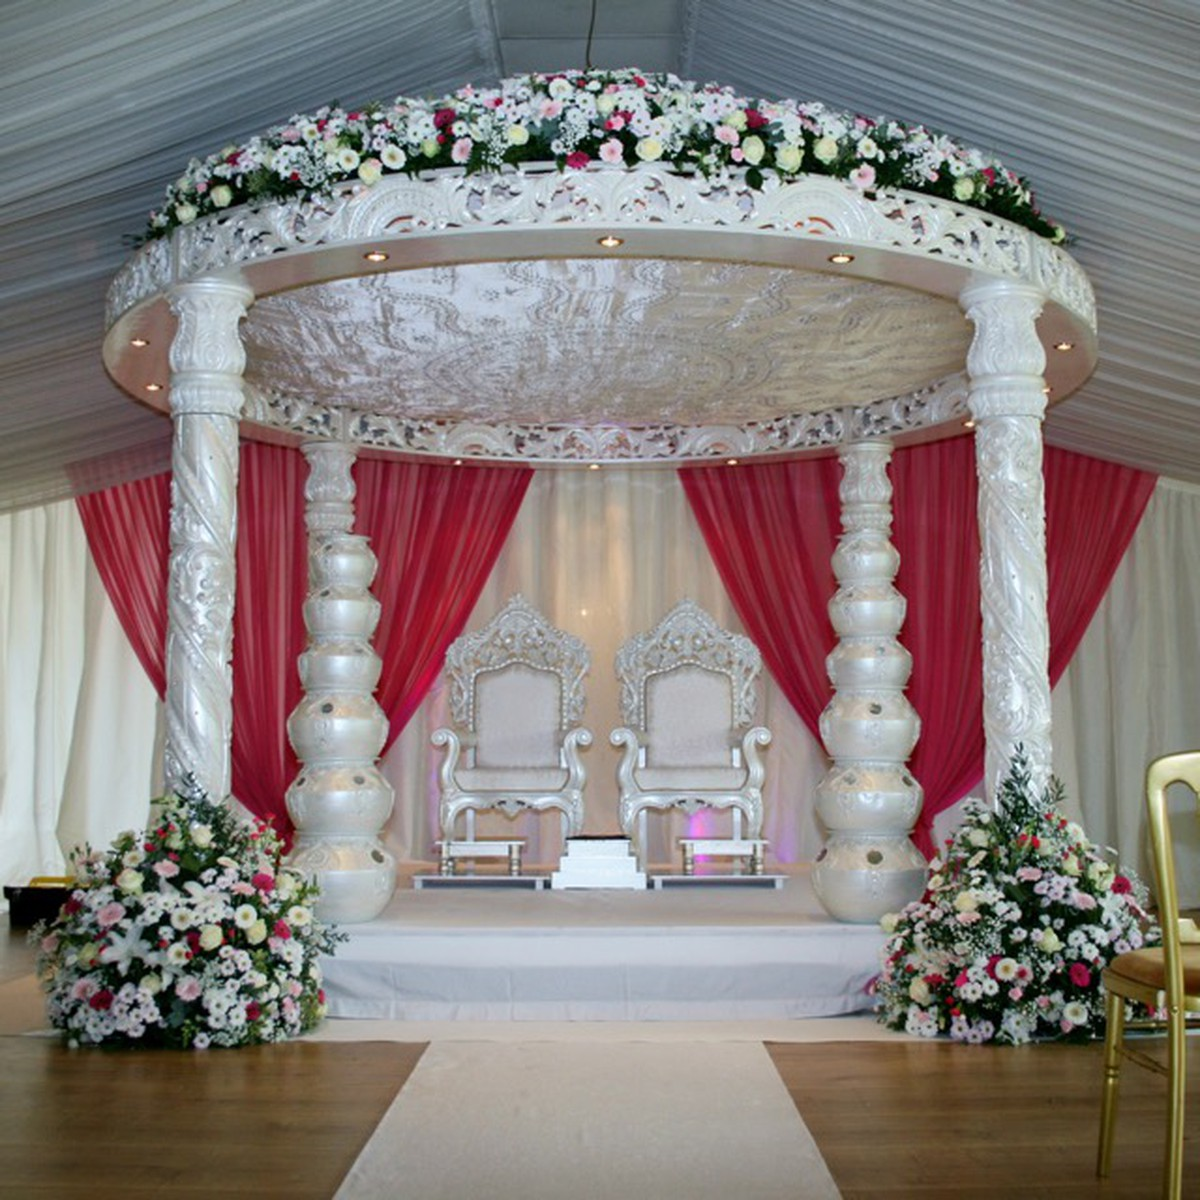 Mandap - Complete With